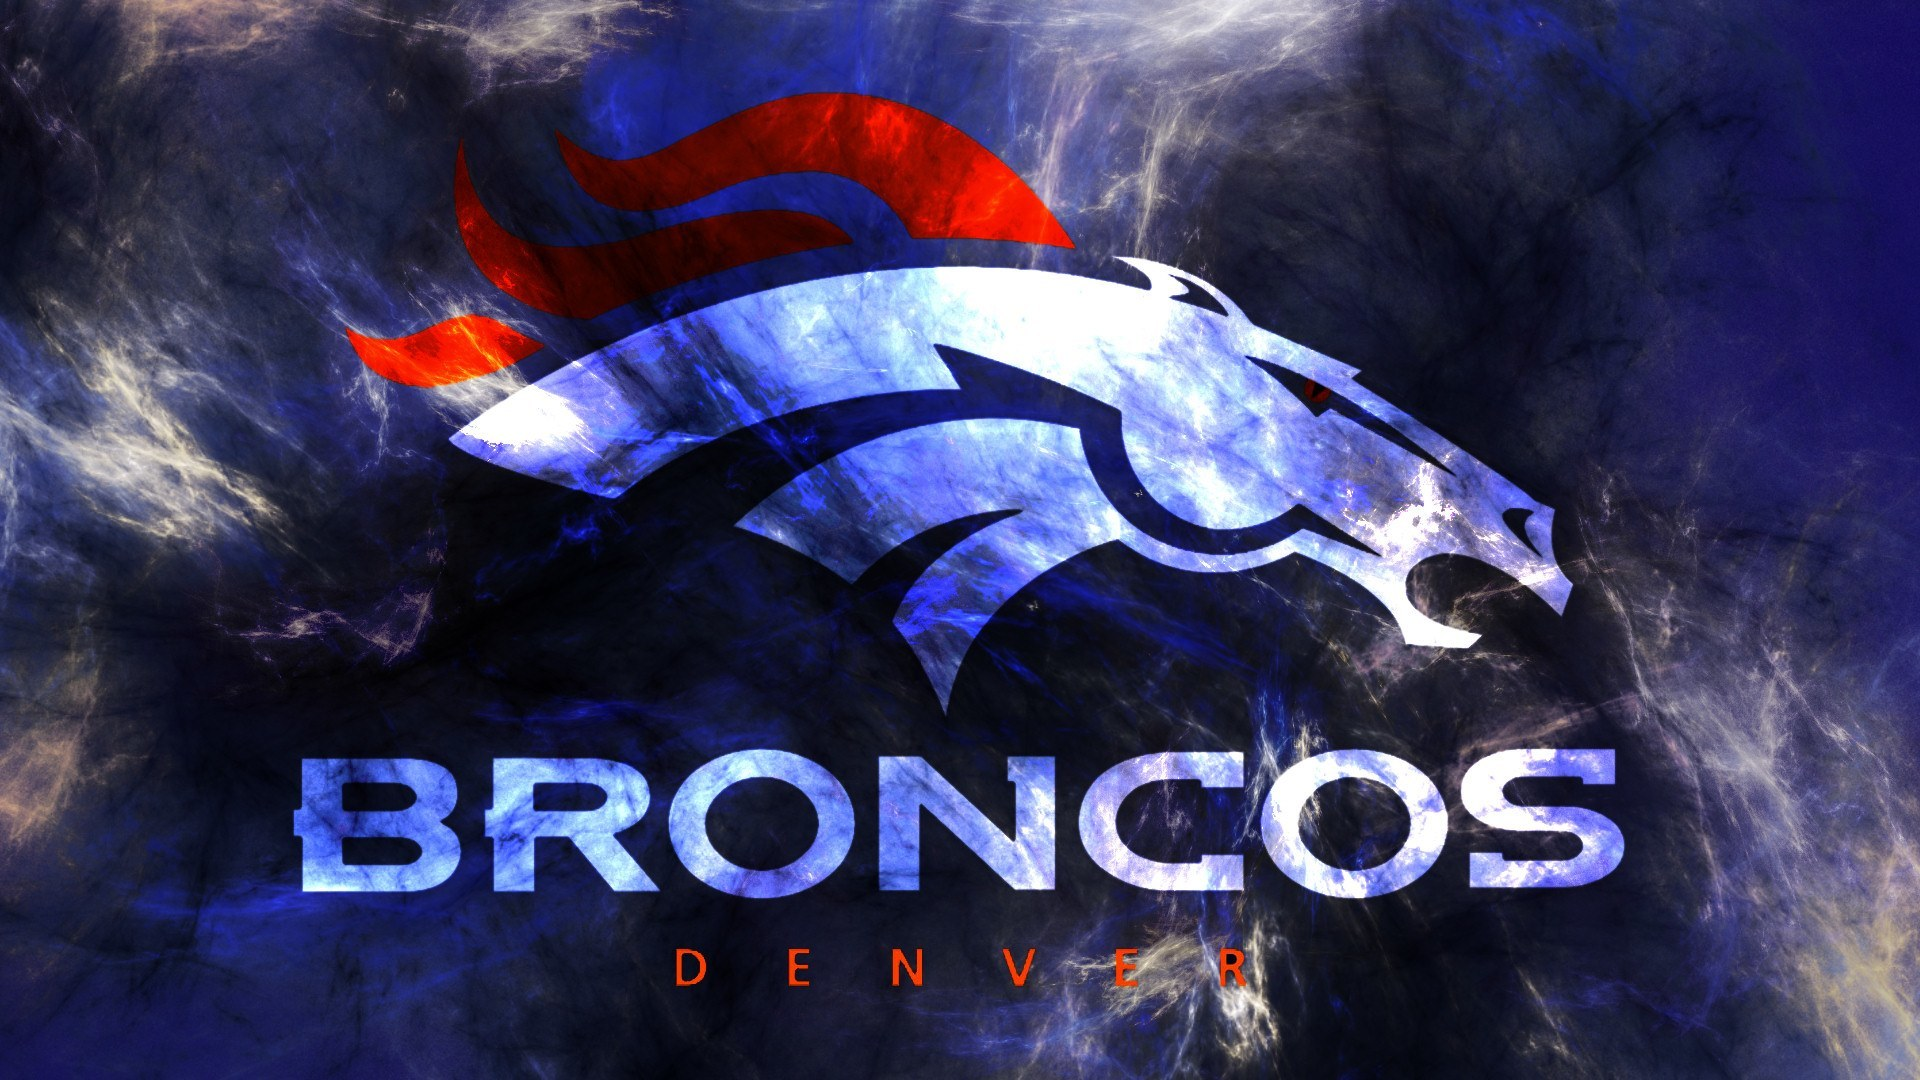 Denver Broncos 2015 Nfl Draft Amp Offseason Recap Movie Tv